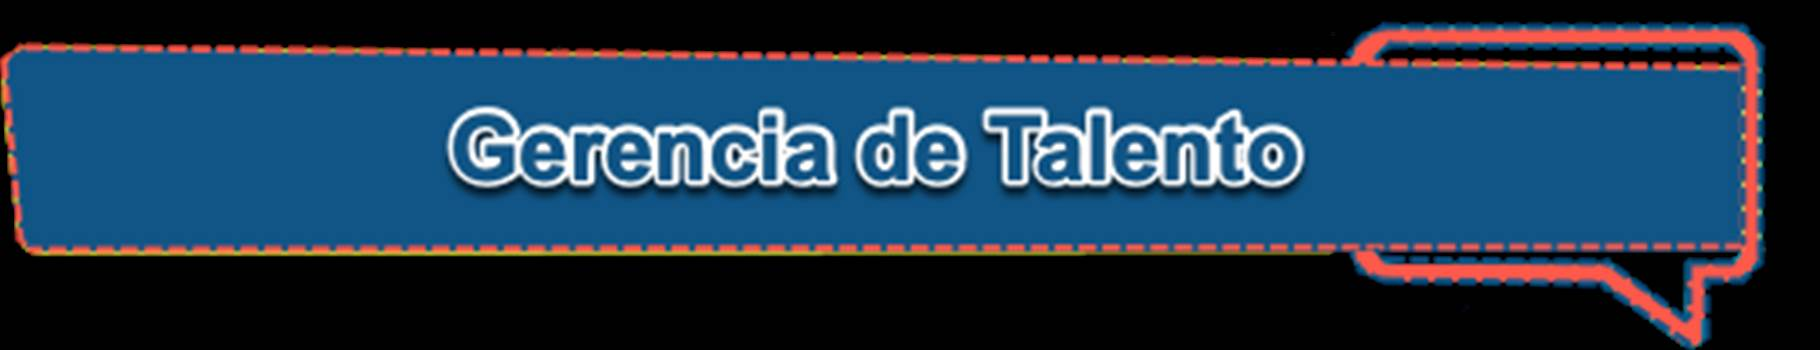 talento.png -